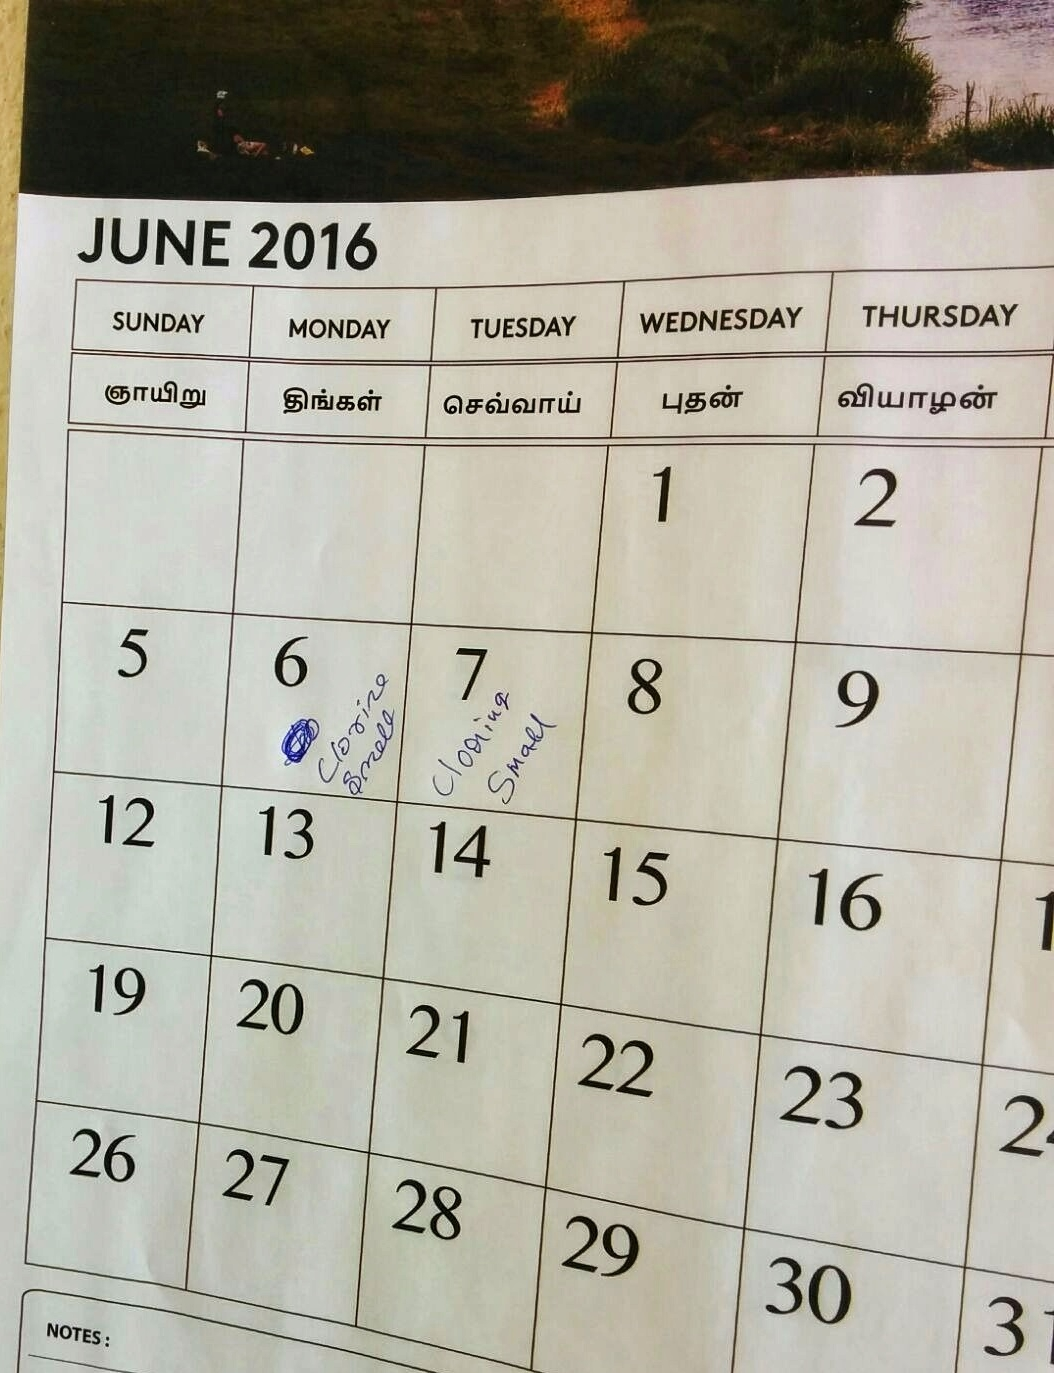 Diary Studies  Providing users with a calendar to note down their experience of new sanitation facilities